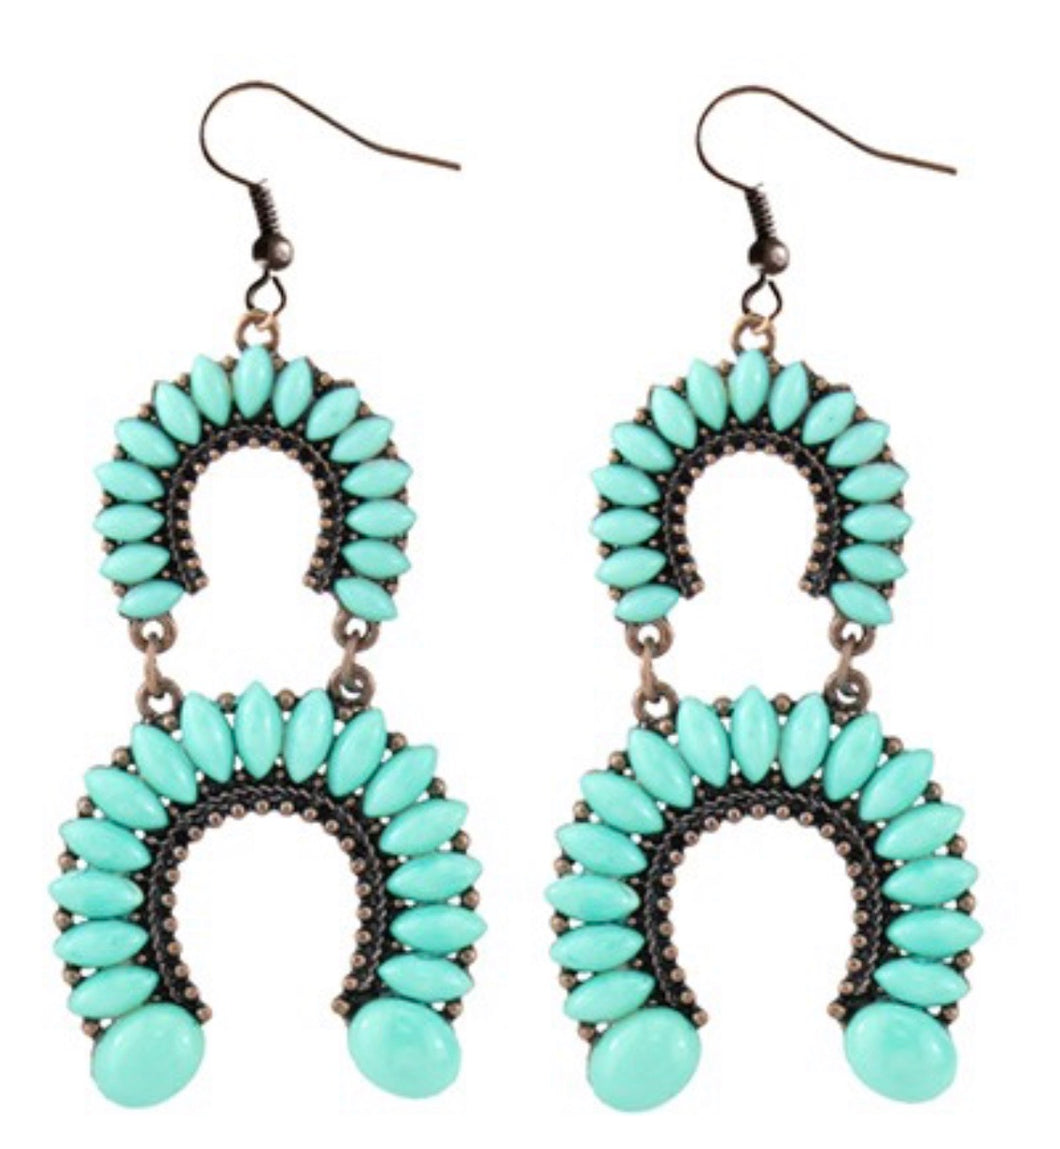 Turquoise Country Cutie Horseshoe Earrings